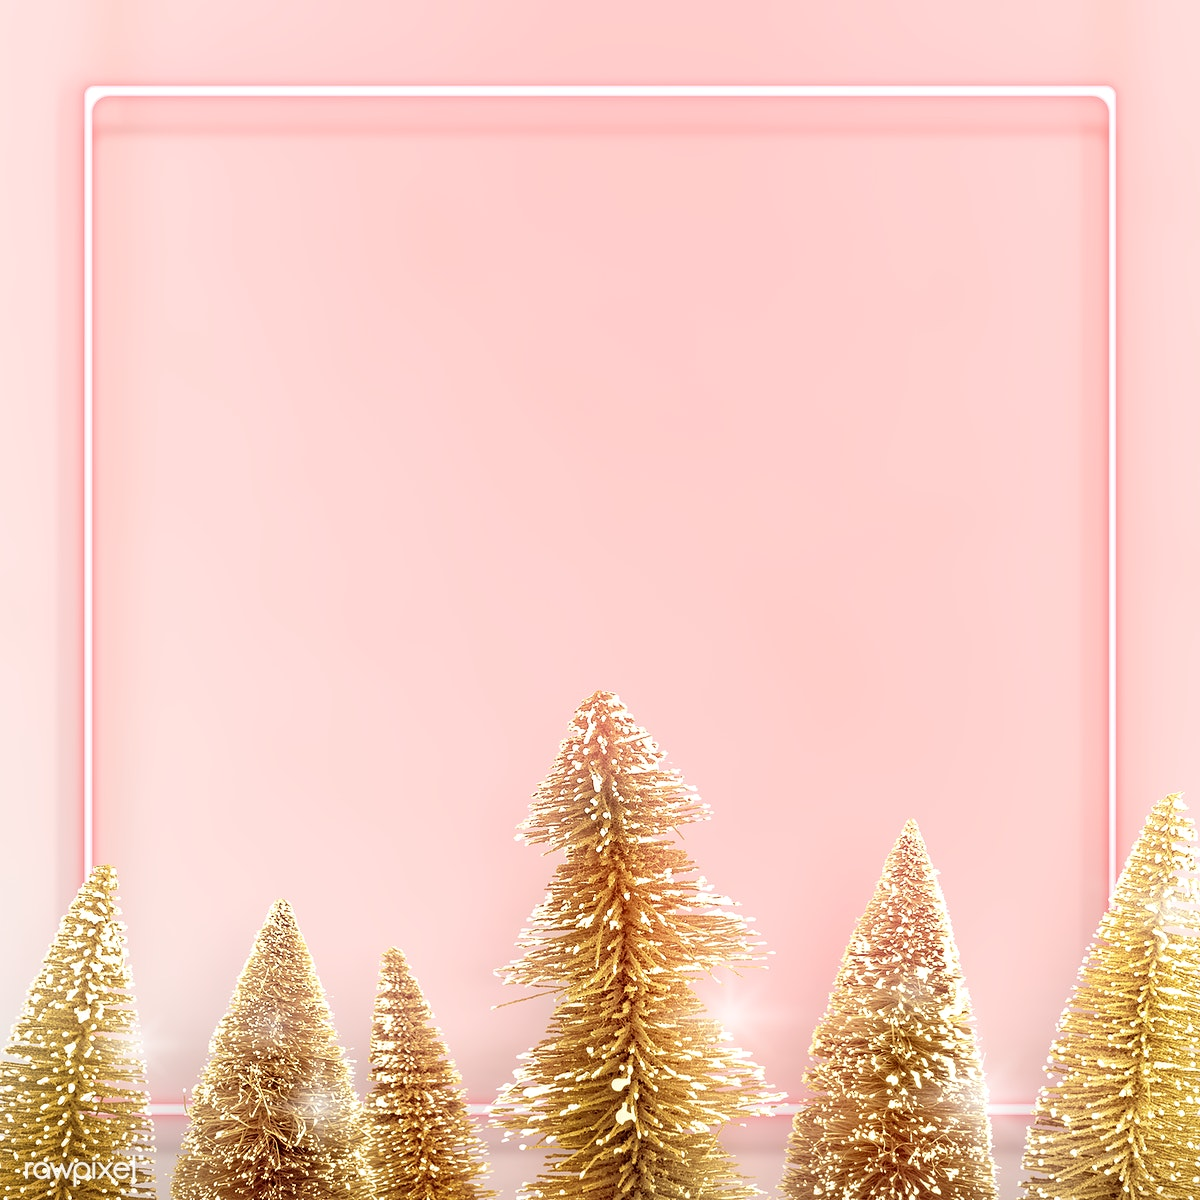 Download Premium Png Of Pink Neon Frame With Gold Christmas Trees